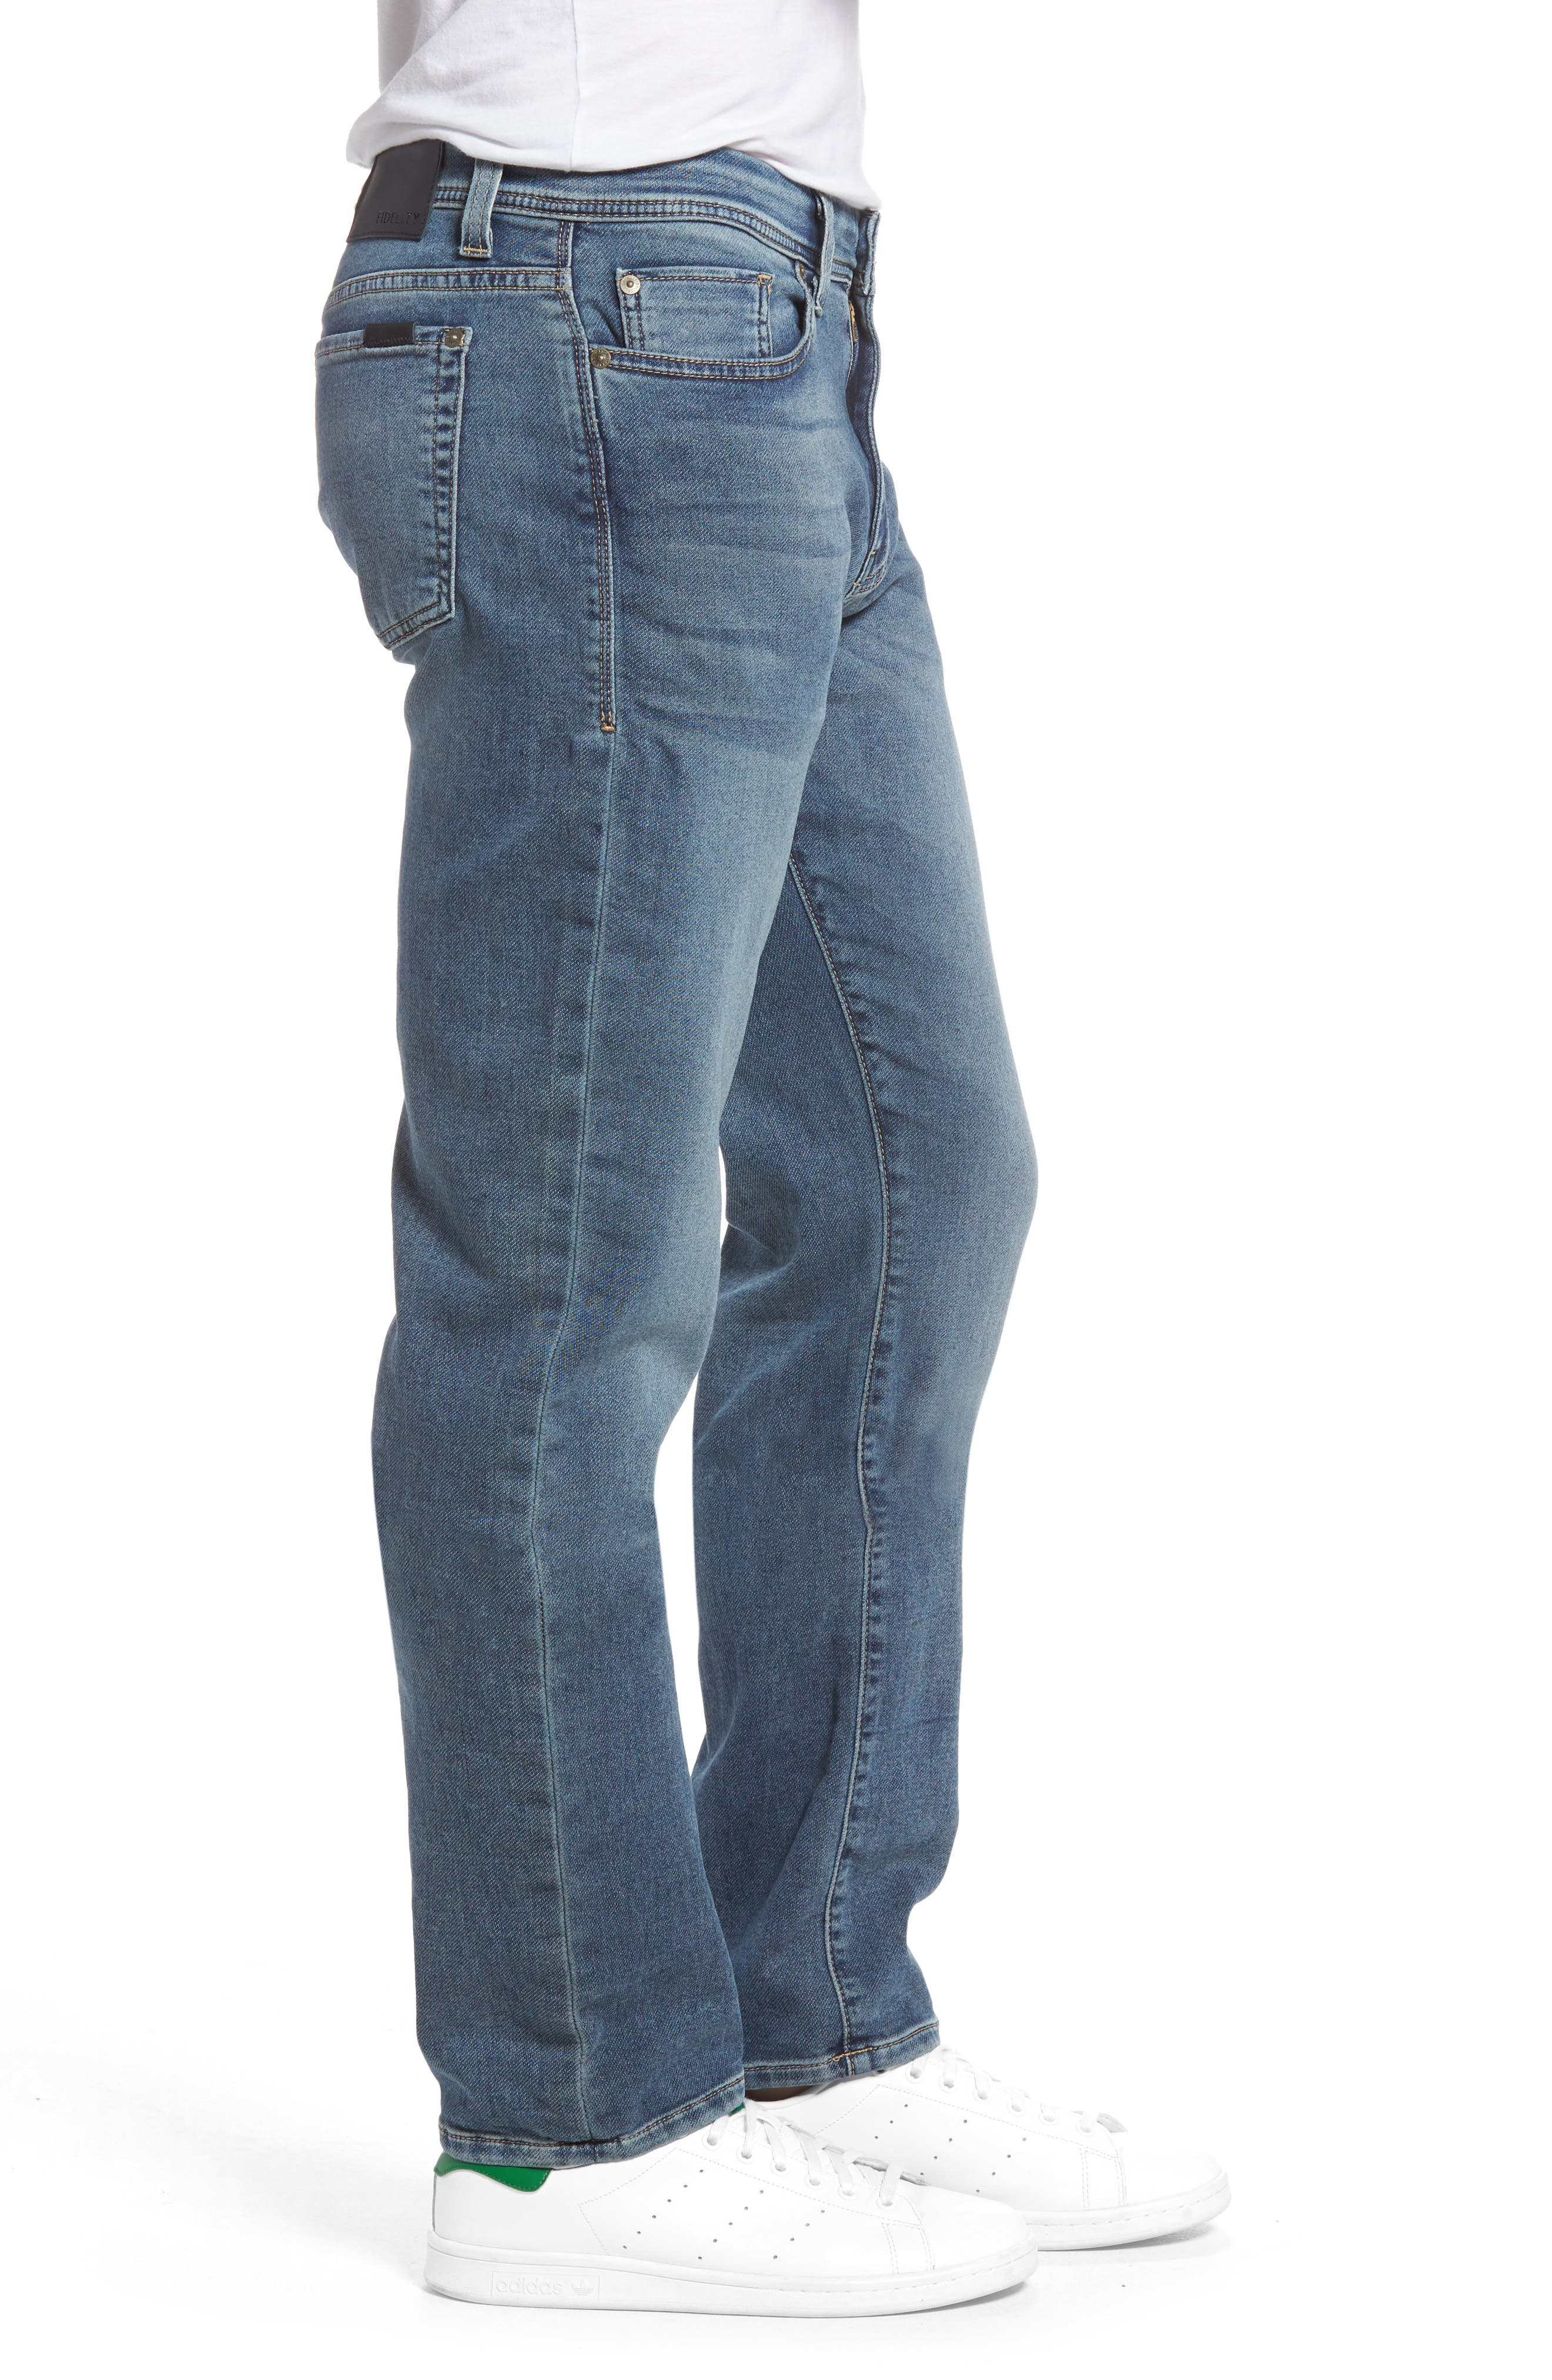 Jimmy Slim Straight Leg Jeans,                             Alternate thumbnail 3, color,                             Oxy Vox Vintage